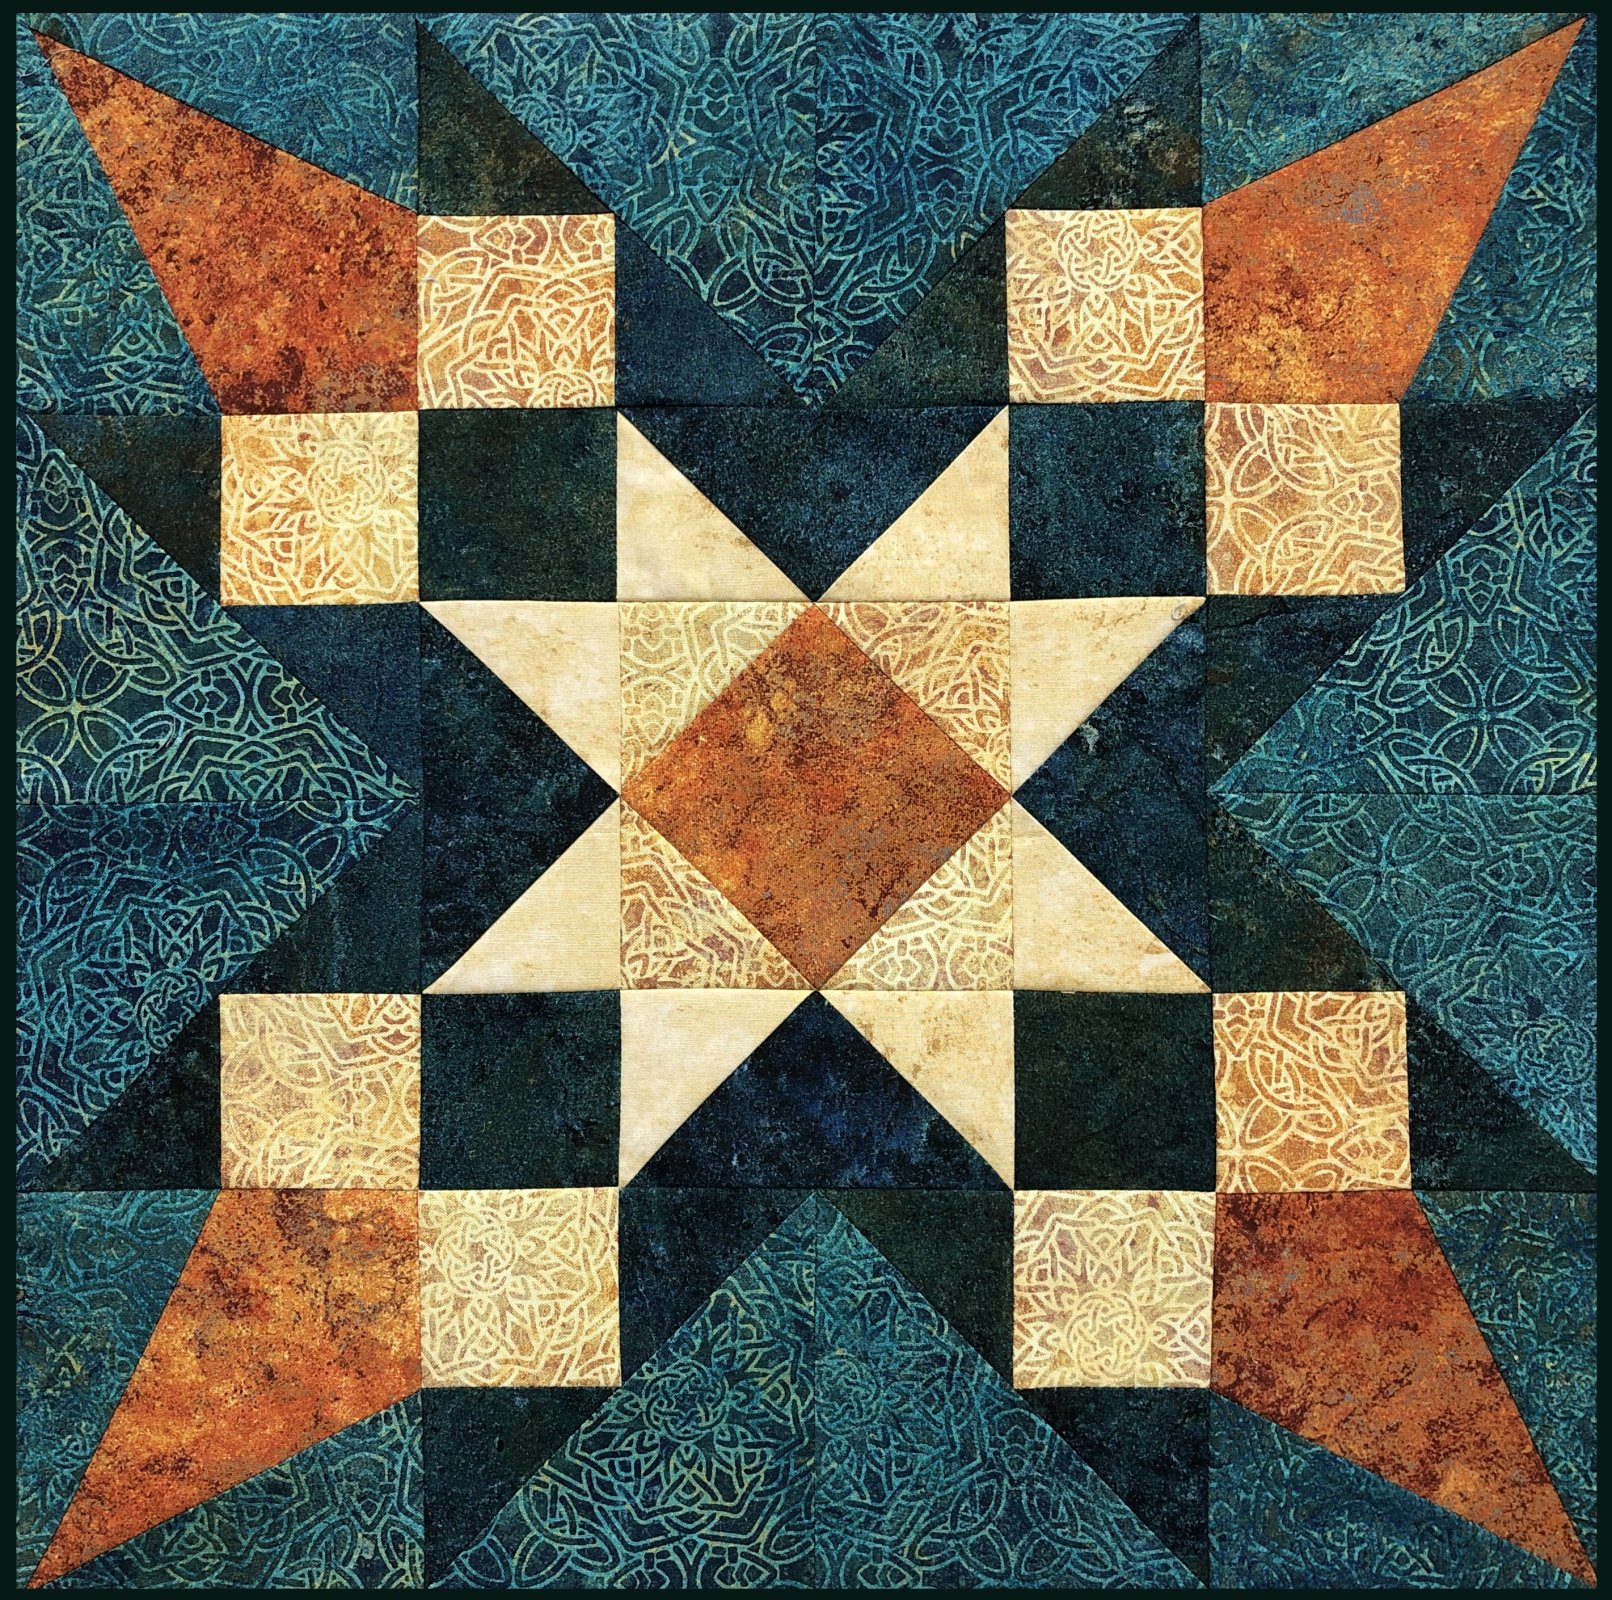 KIT- Merlin's Star, a Stonehenge Solstice Block Party Kit